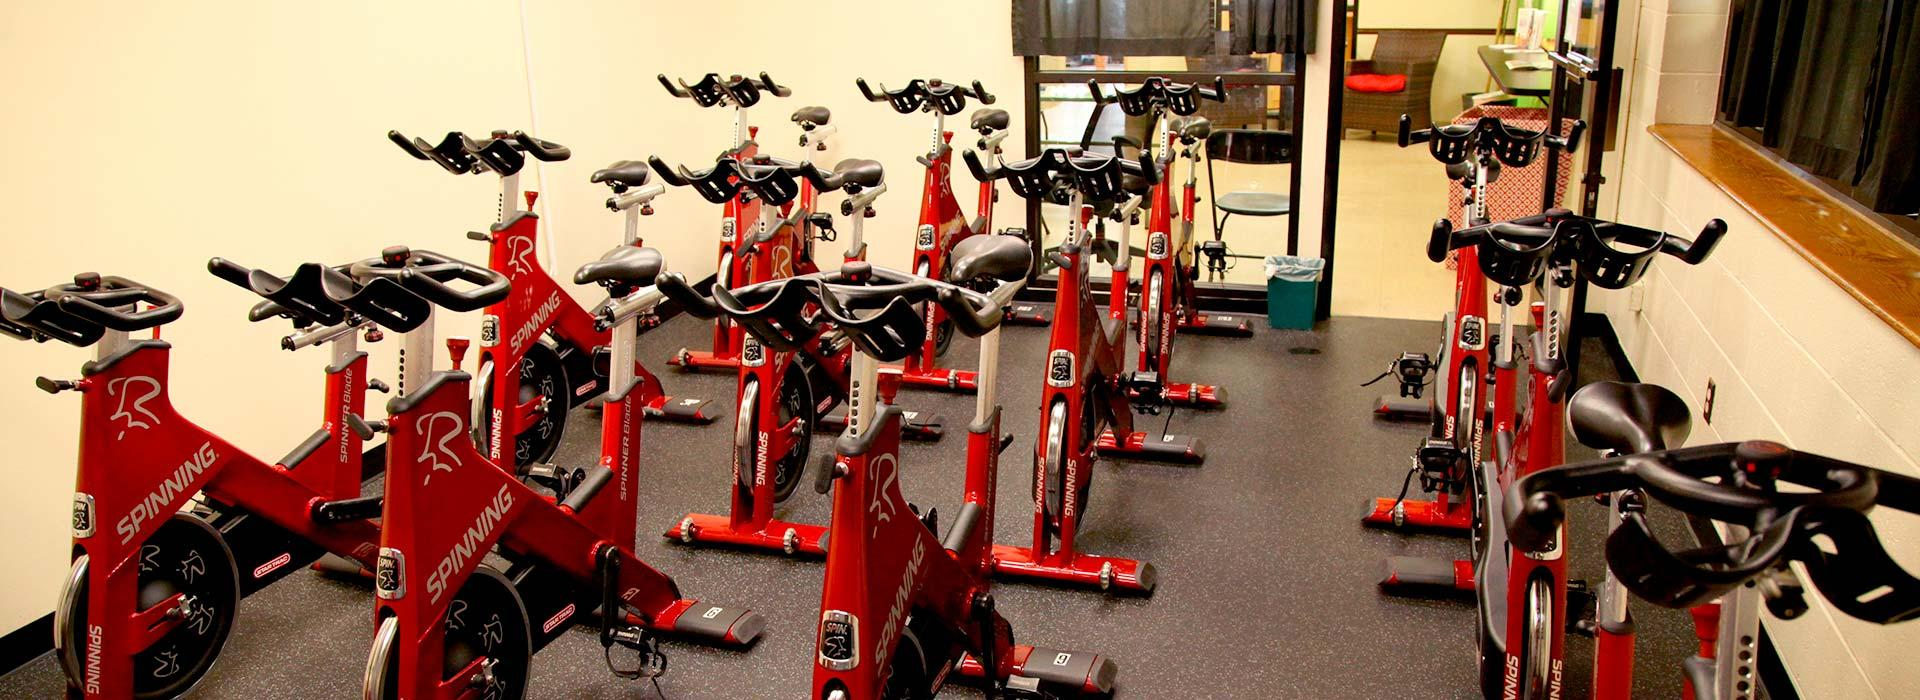 Effingham Street Family YMCA group cycling class